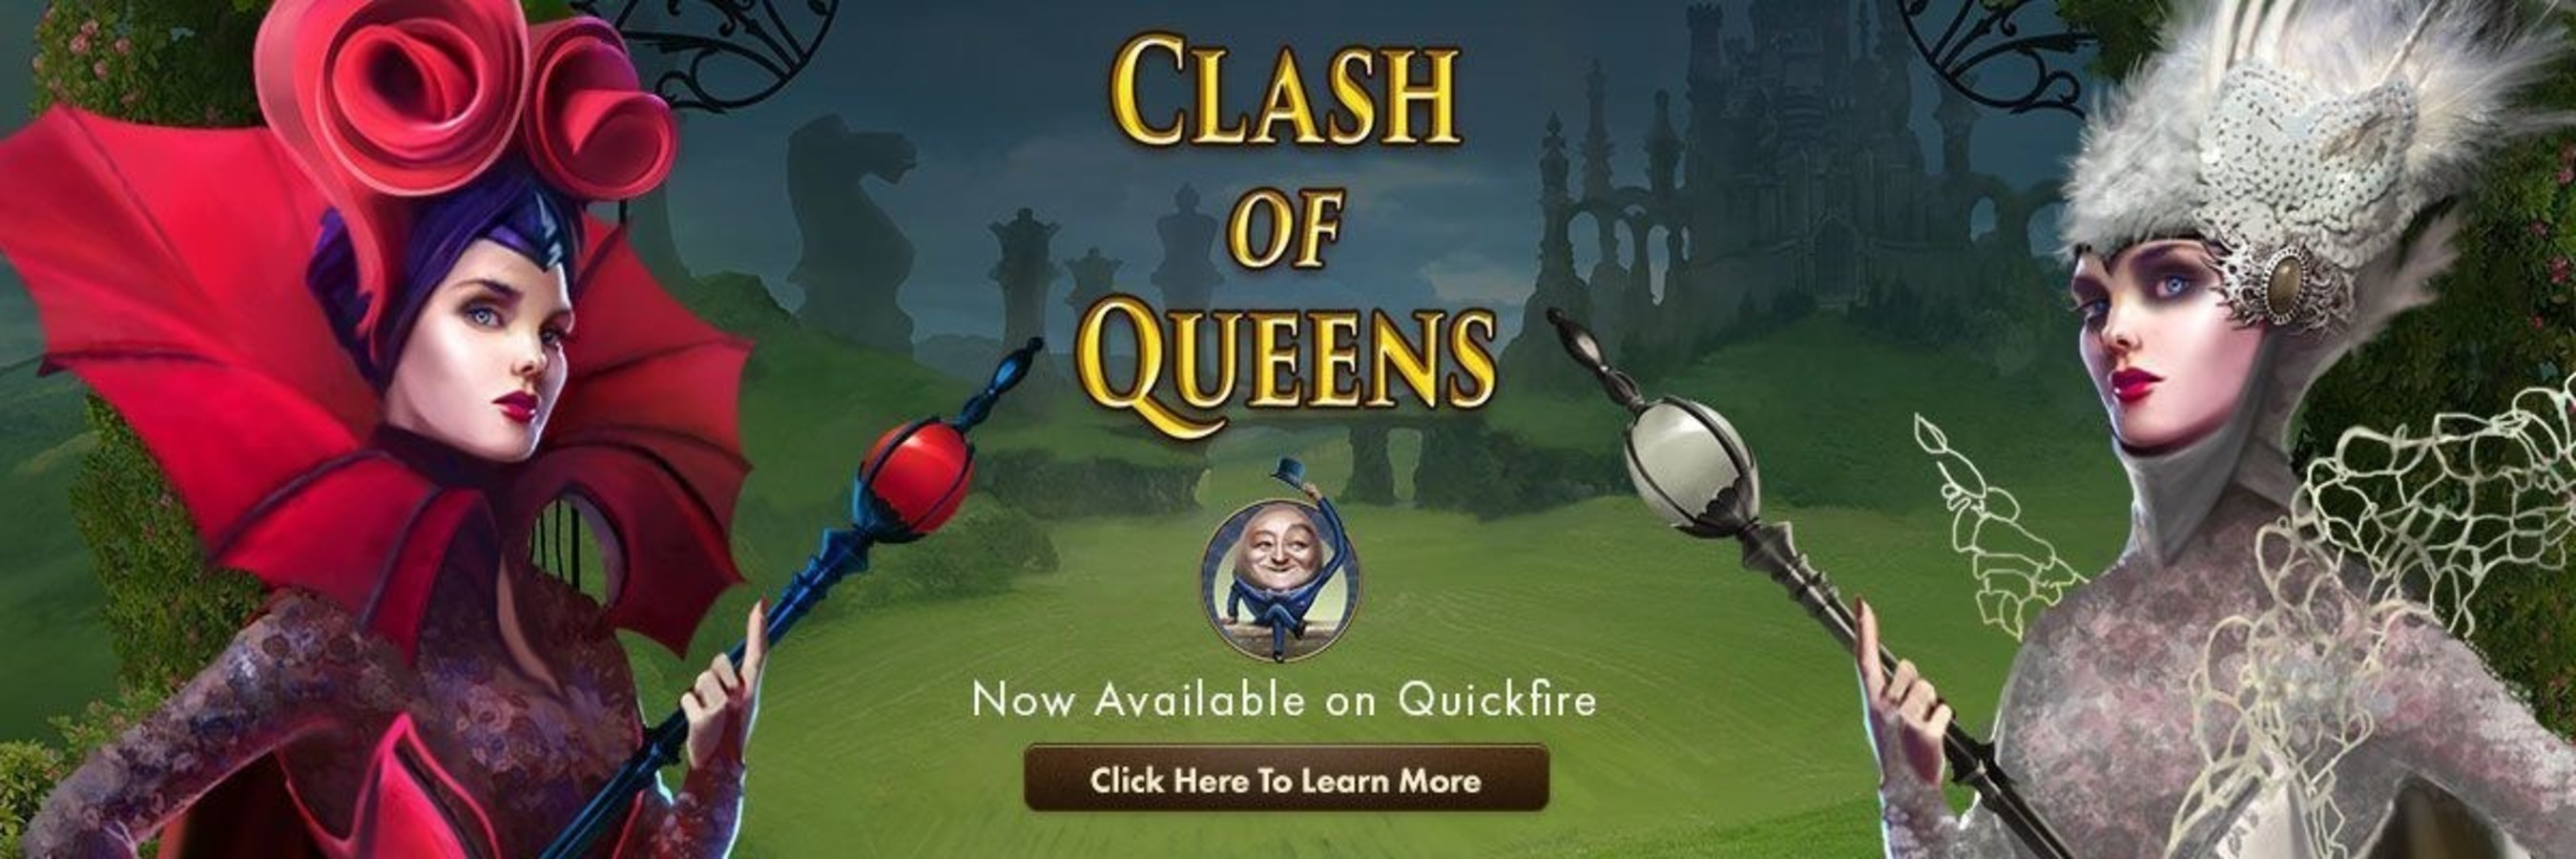 Genesis Gaming Announces Clash Of Queens Video Slot Game, Available on the Quickfire Network